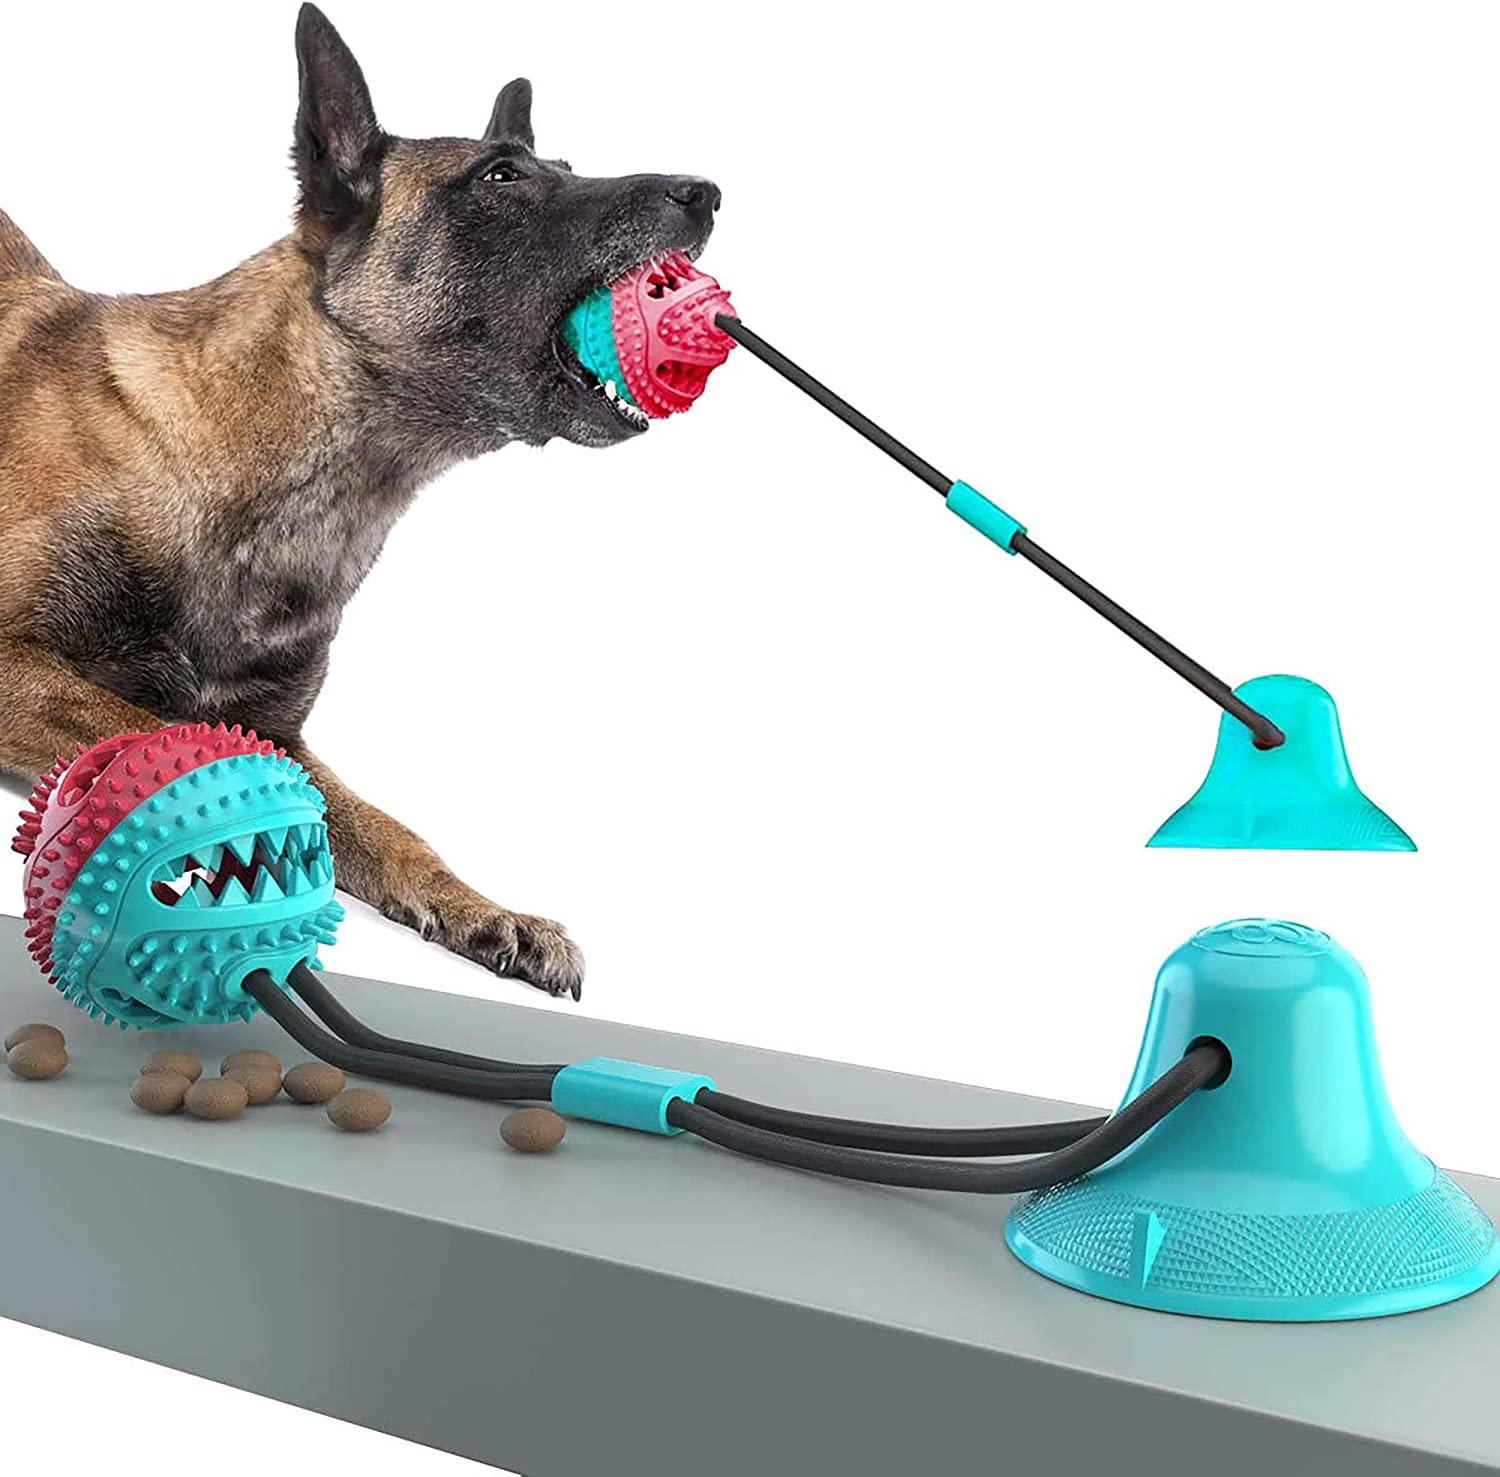 Dog Chew Toys, Dogs Training Treats Teething Rope Toys with Suction Cup for Boredom, Indoor Interactive Toy for Puppy, Dog Puzzle Treat Food Dispensing Ball Toy, Suitable for Small Large Dogs